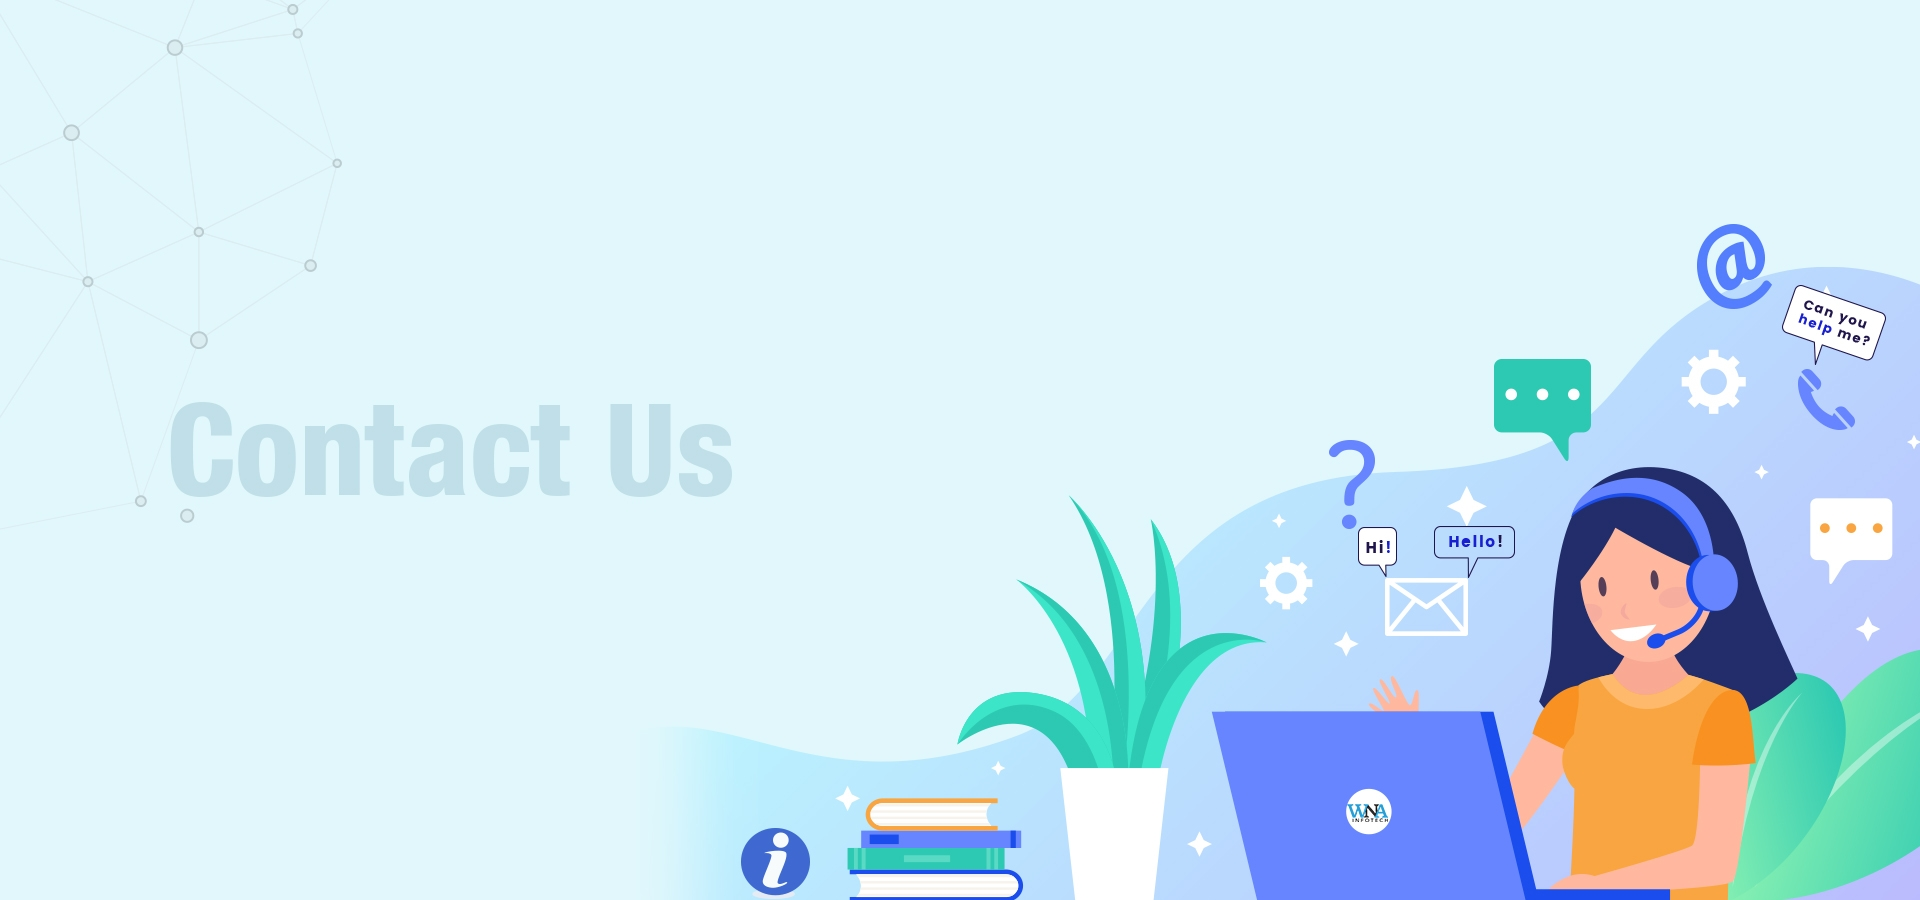 Contact Best Web Design Company Middletown